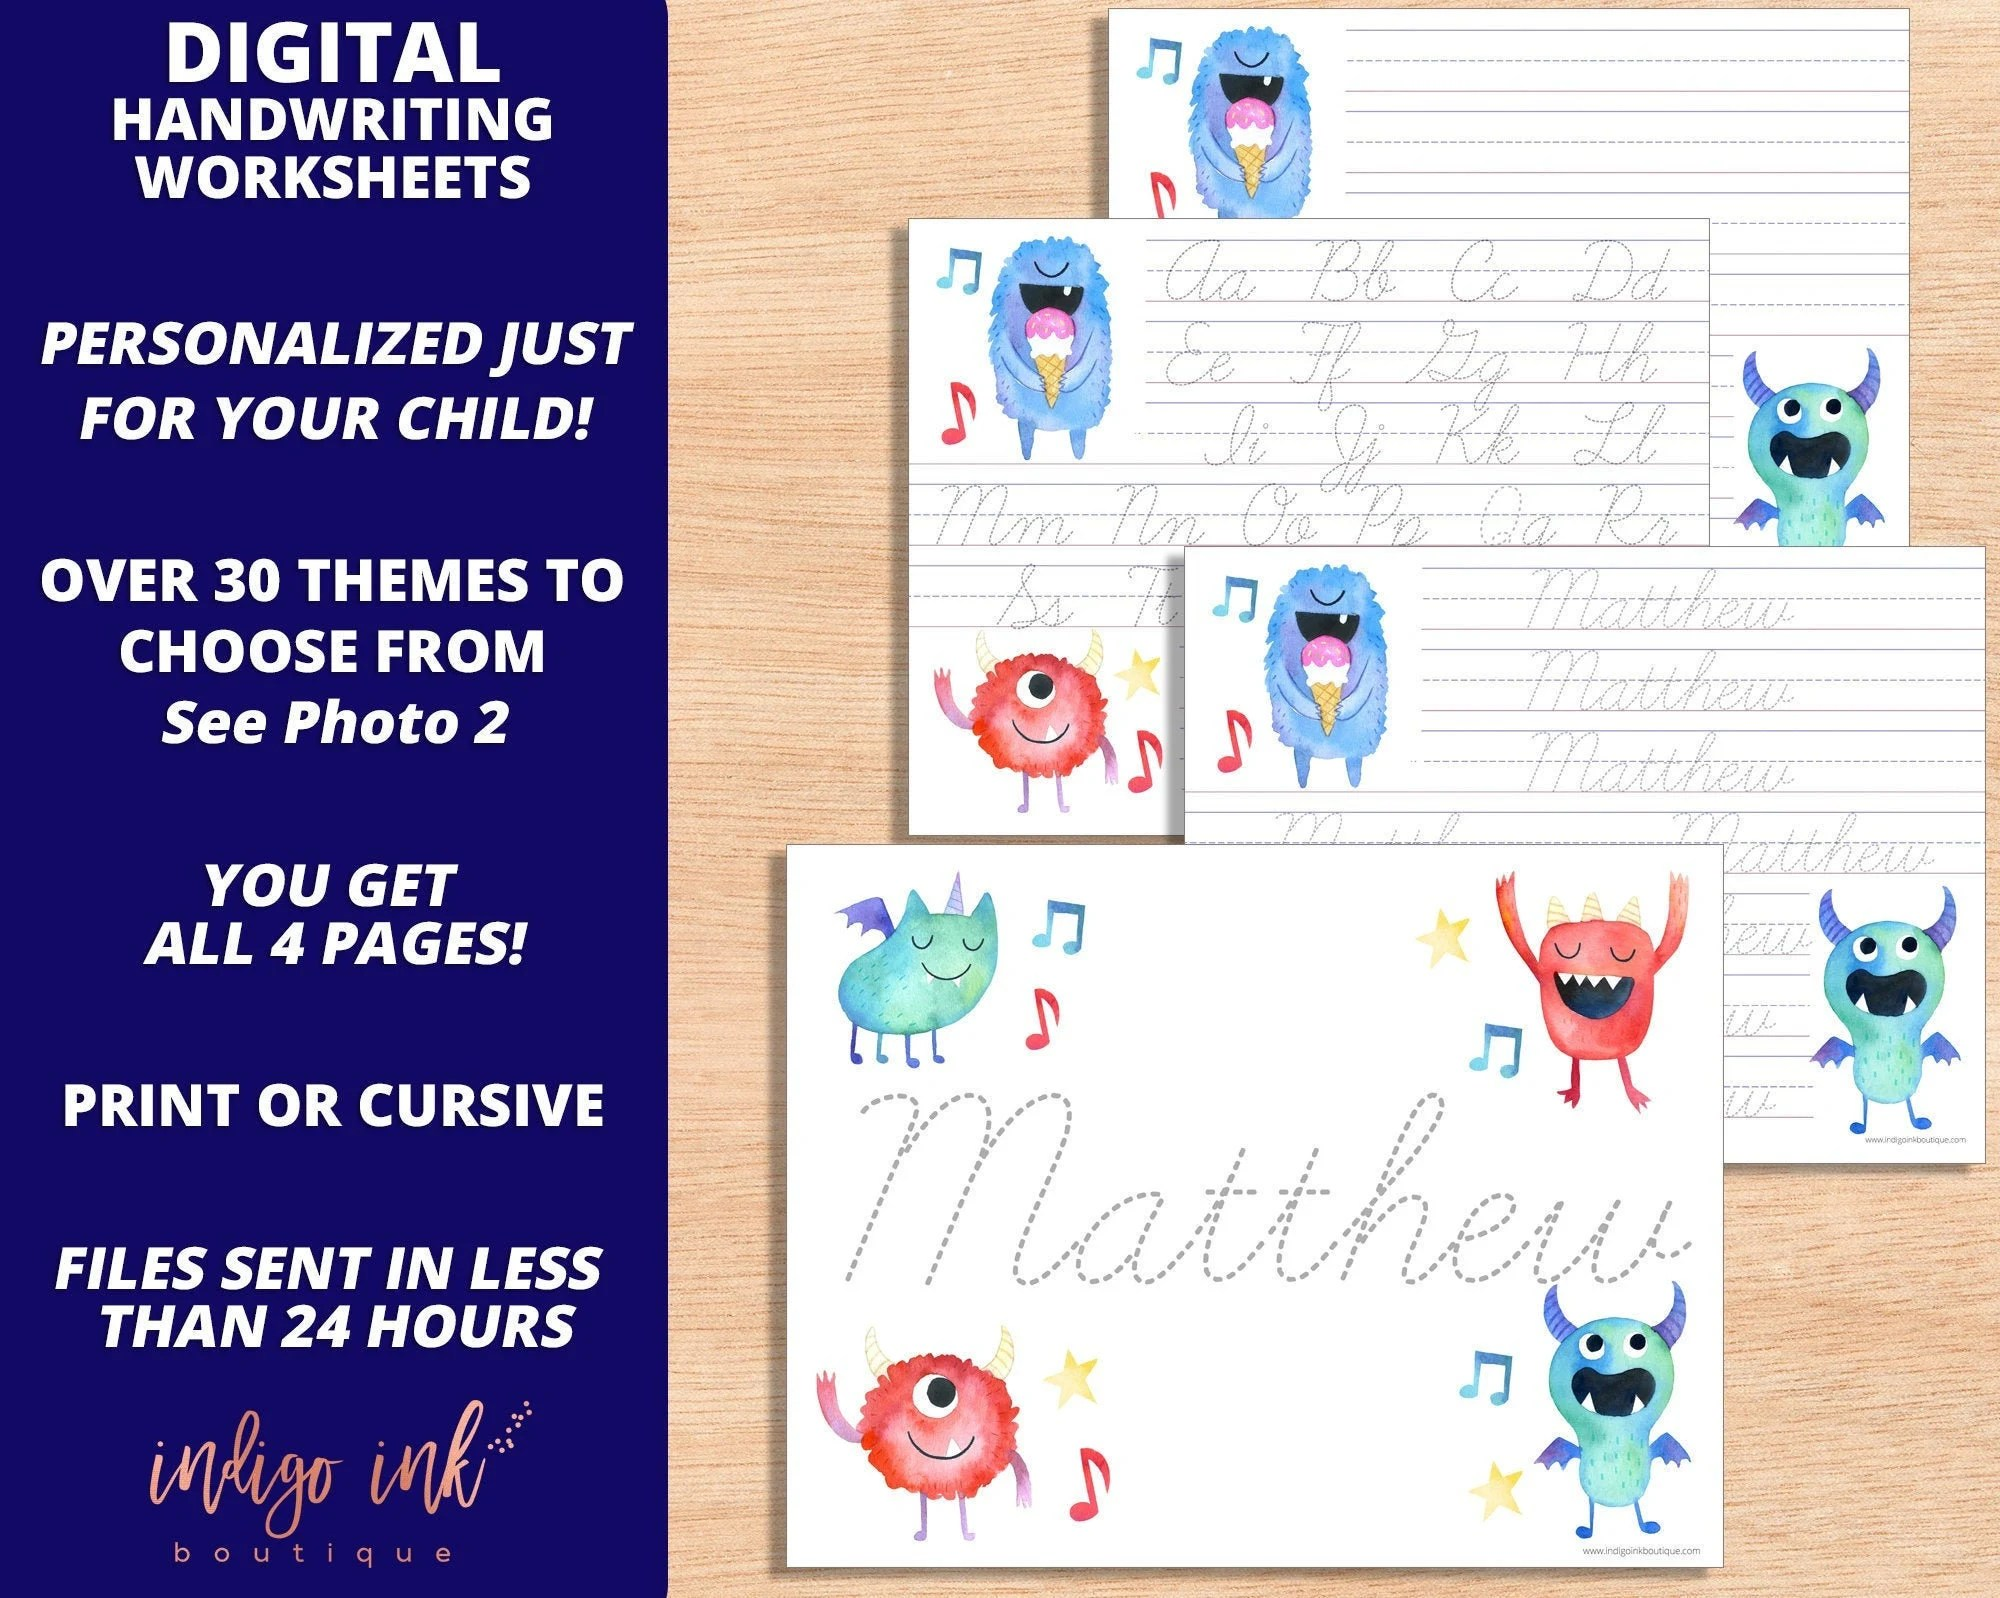 Personalized Handwriting Worksheet Digital Download 1st